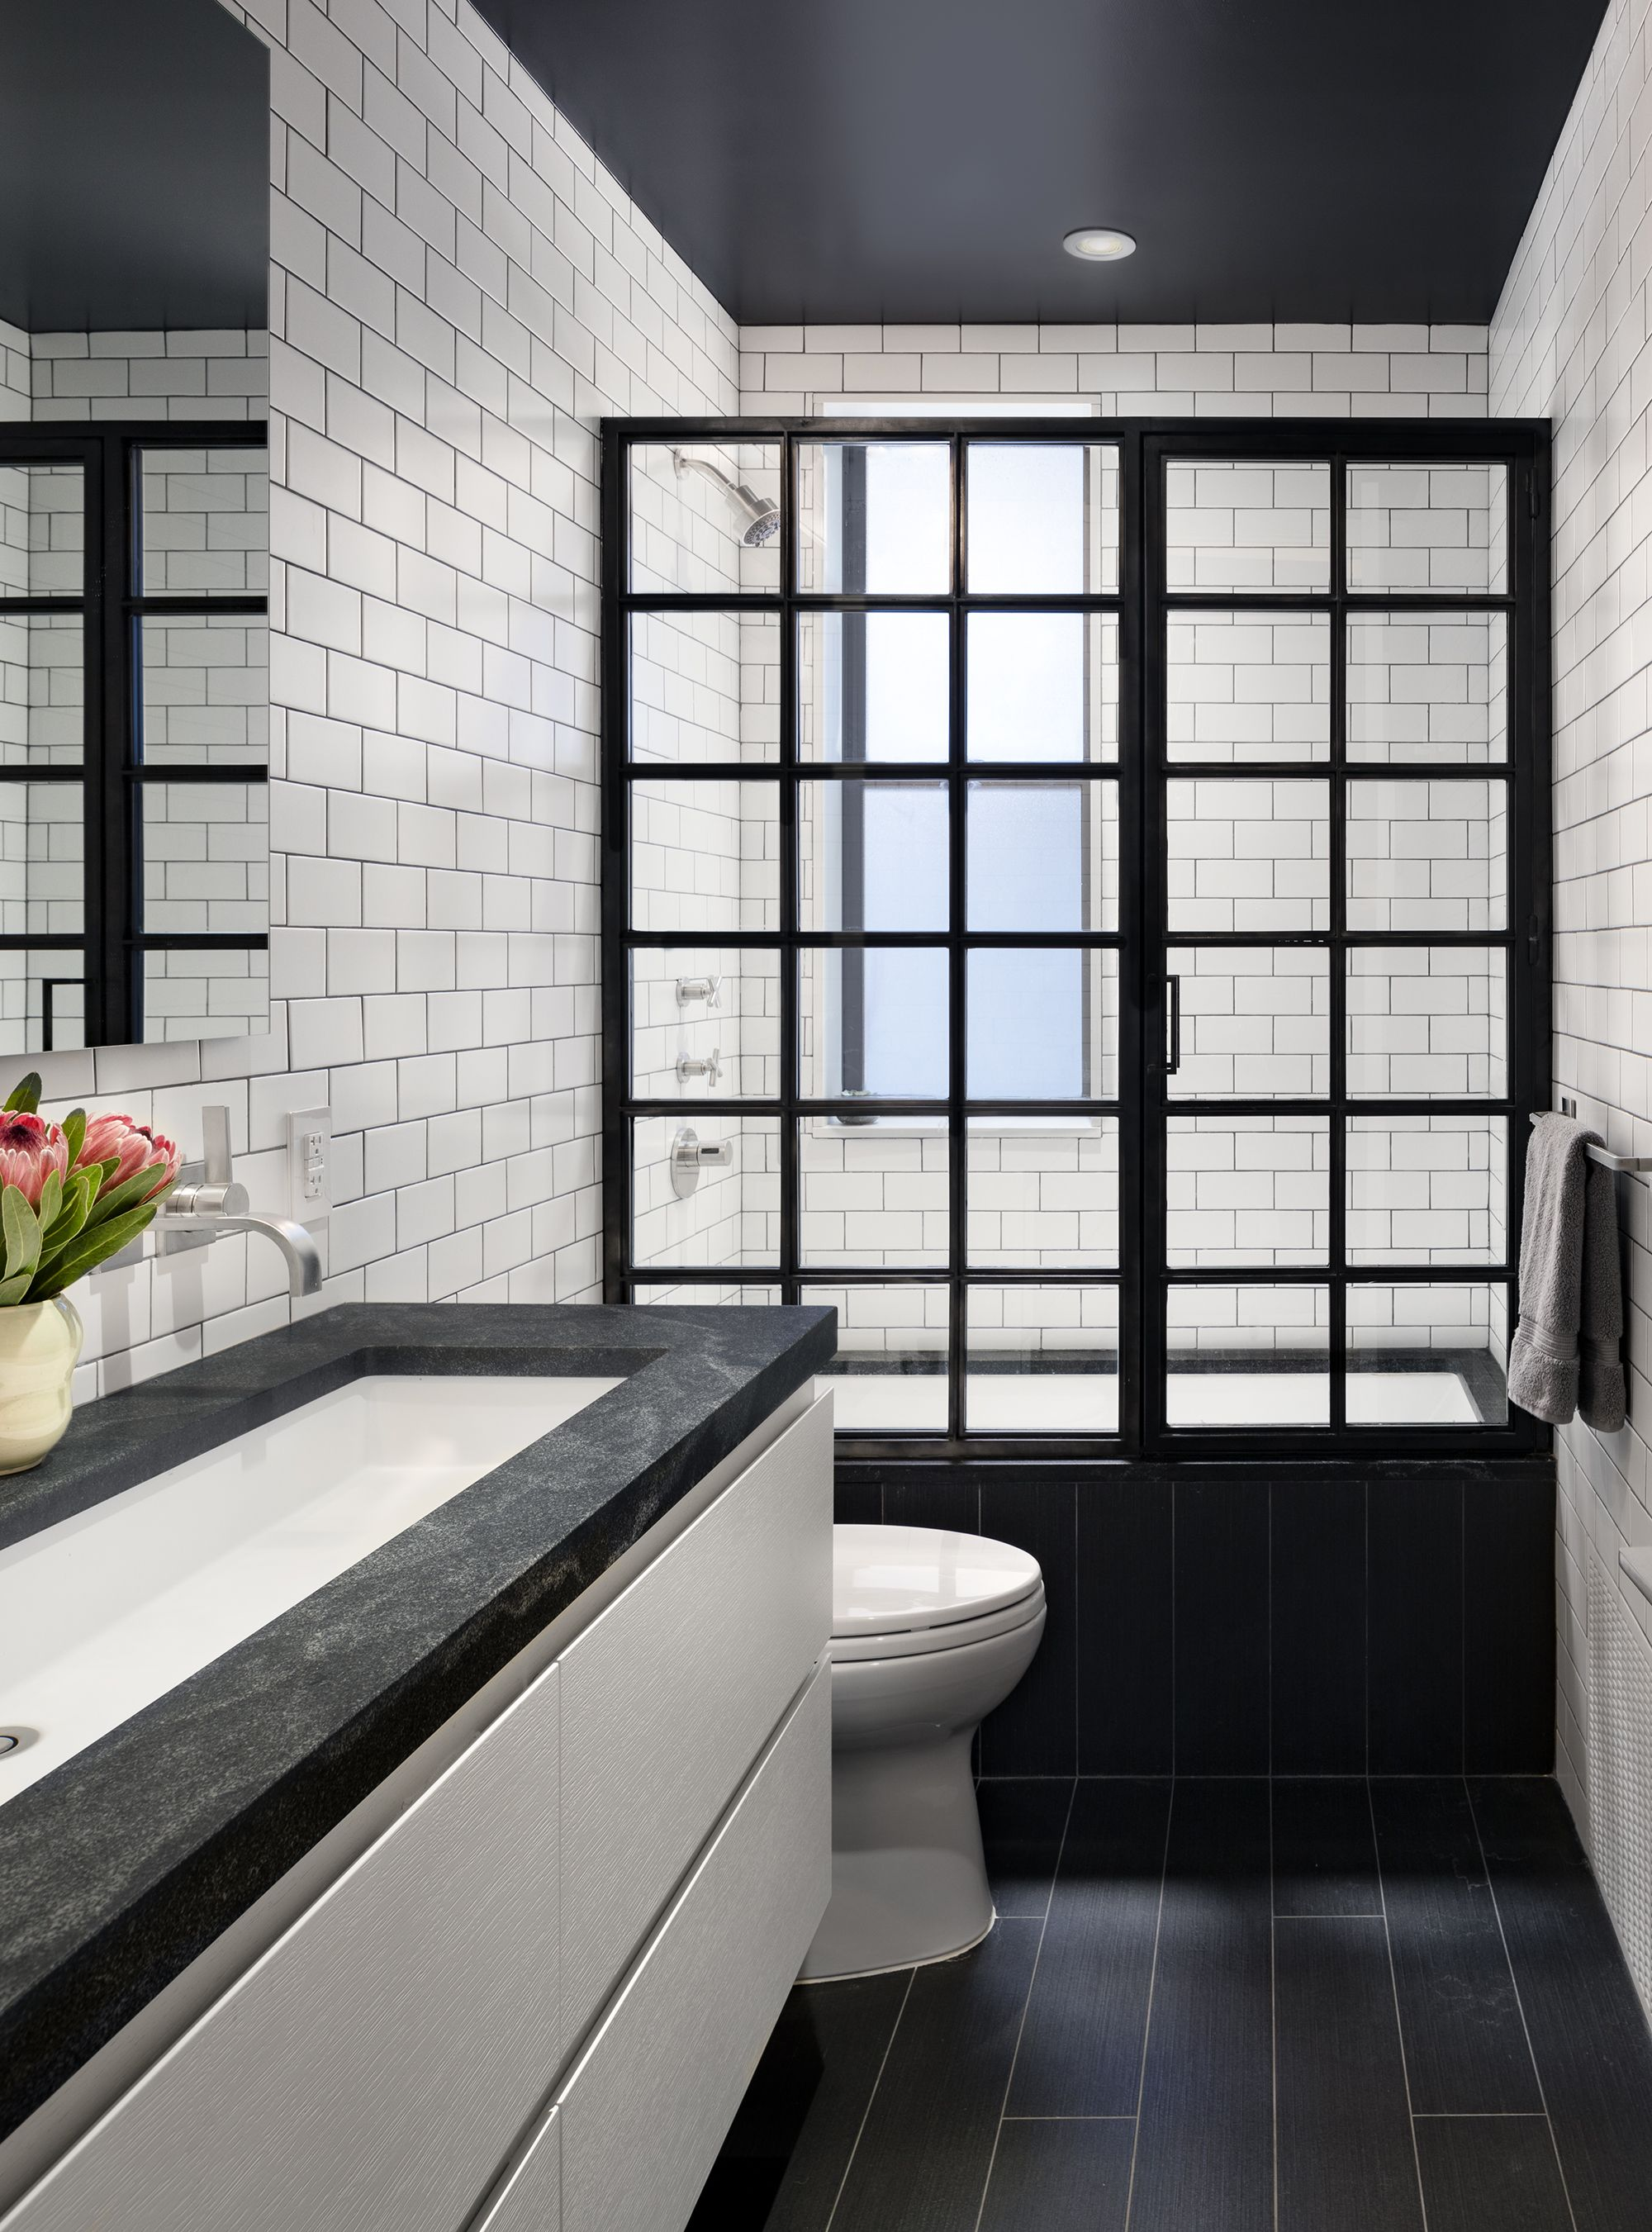 A Steel And Glass Enclosure For The Tub Shower Black Ceiling Master Bathroom Decor Black And White Master Bathroom Shower Remodel